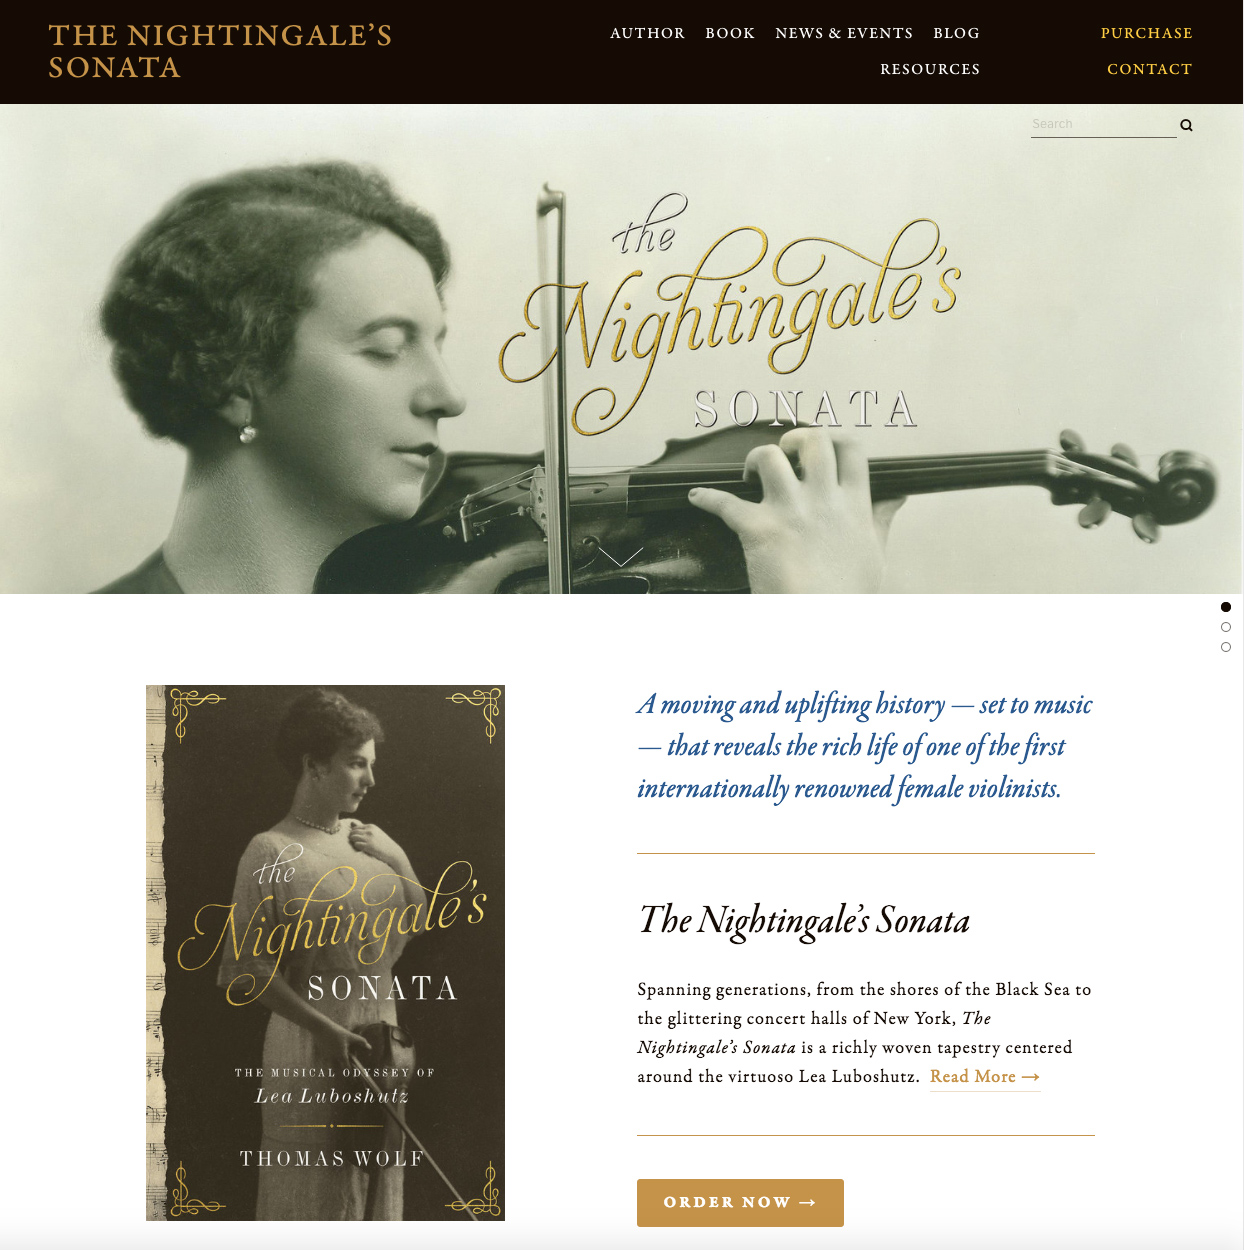 Website for The Nightingale's Sonata by Thomas Wolf